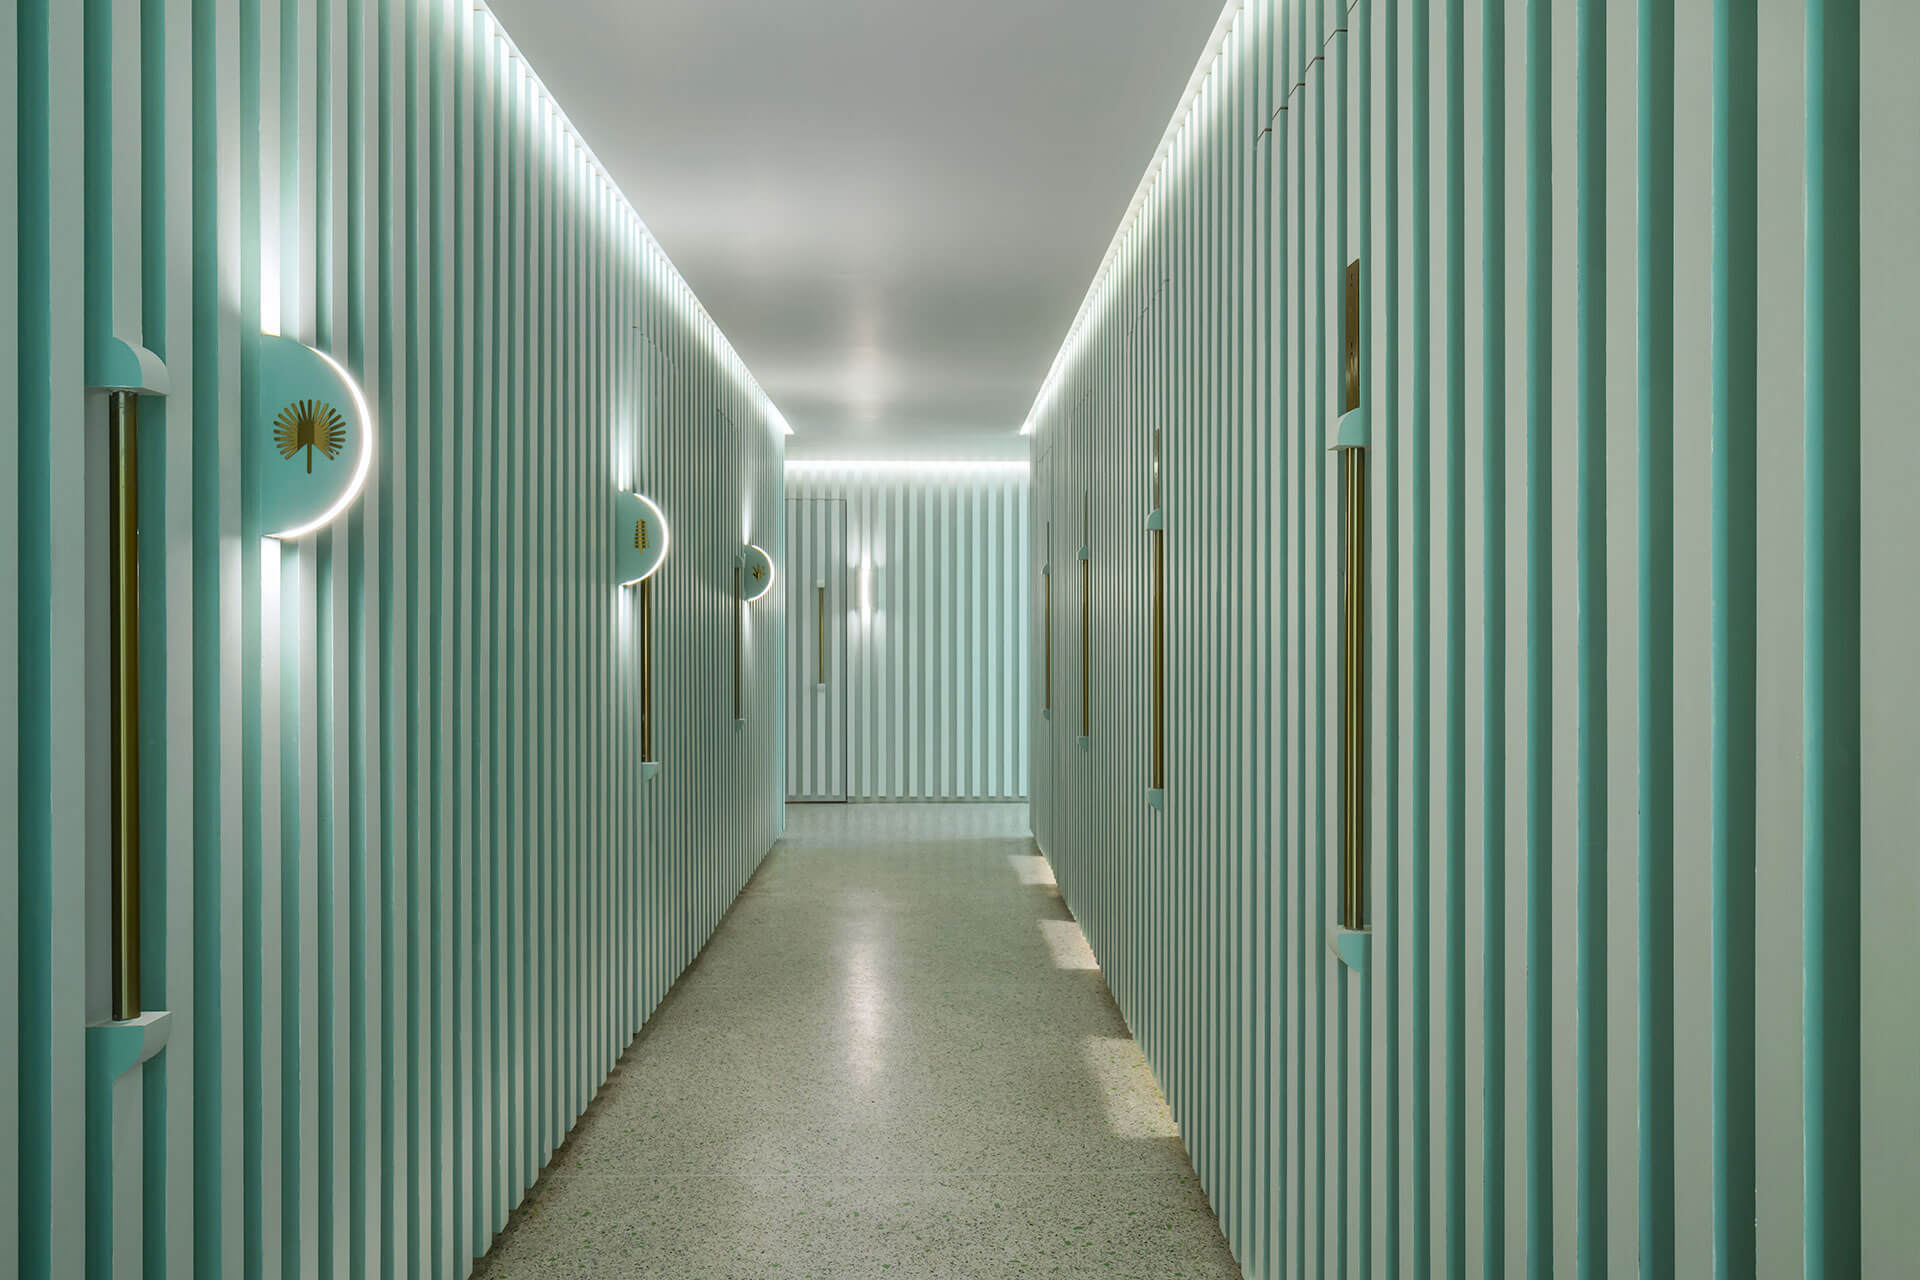 Corridor leading to the spa rooms | Infinity Wellbeing | Space Popular | STIRworld